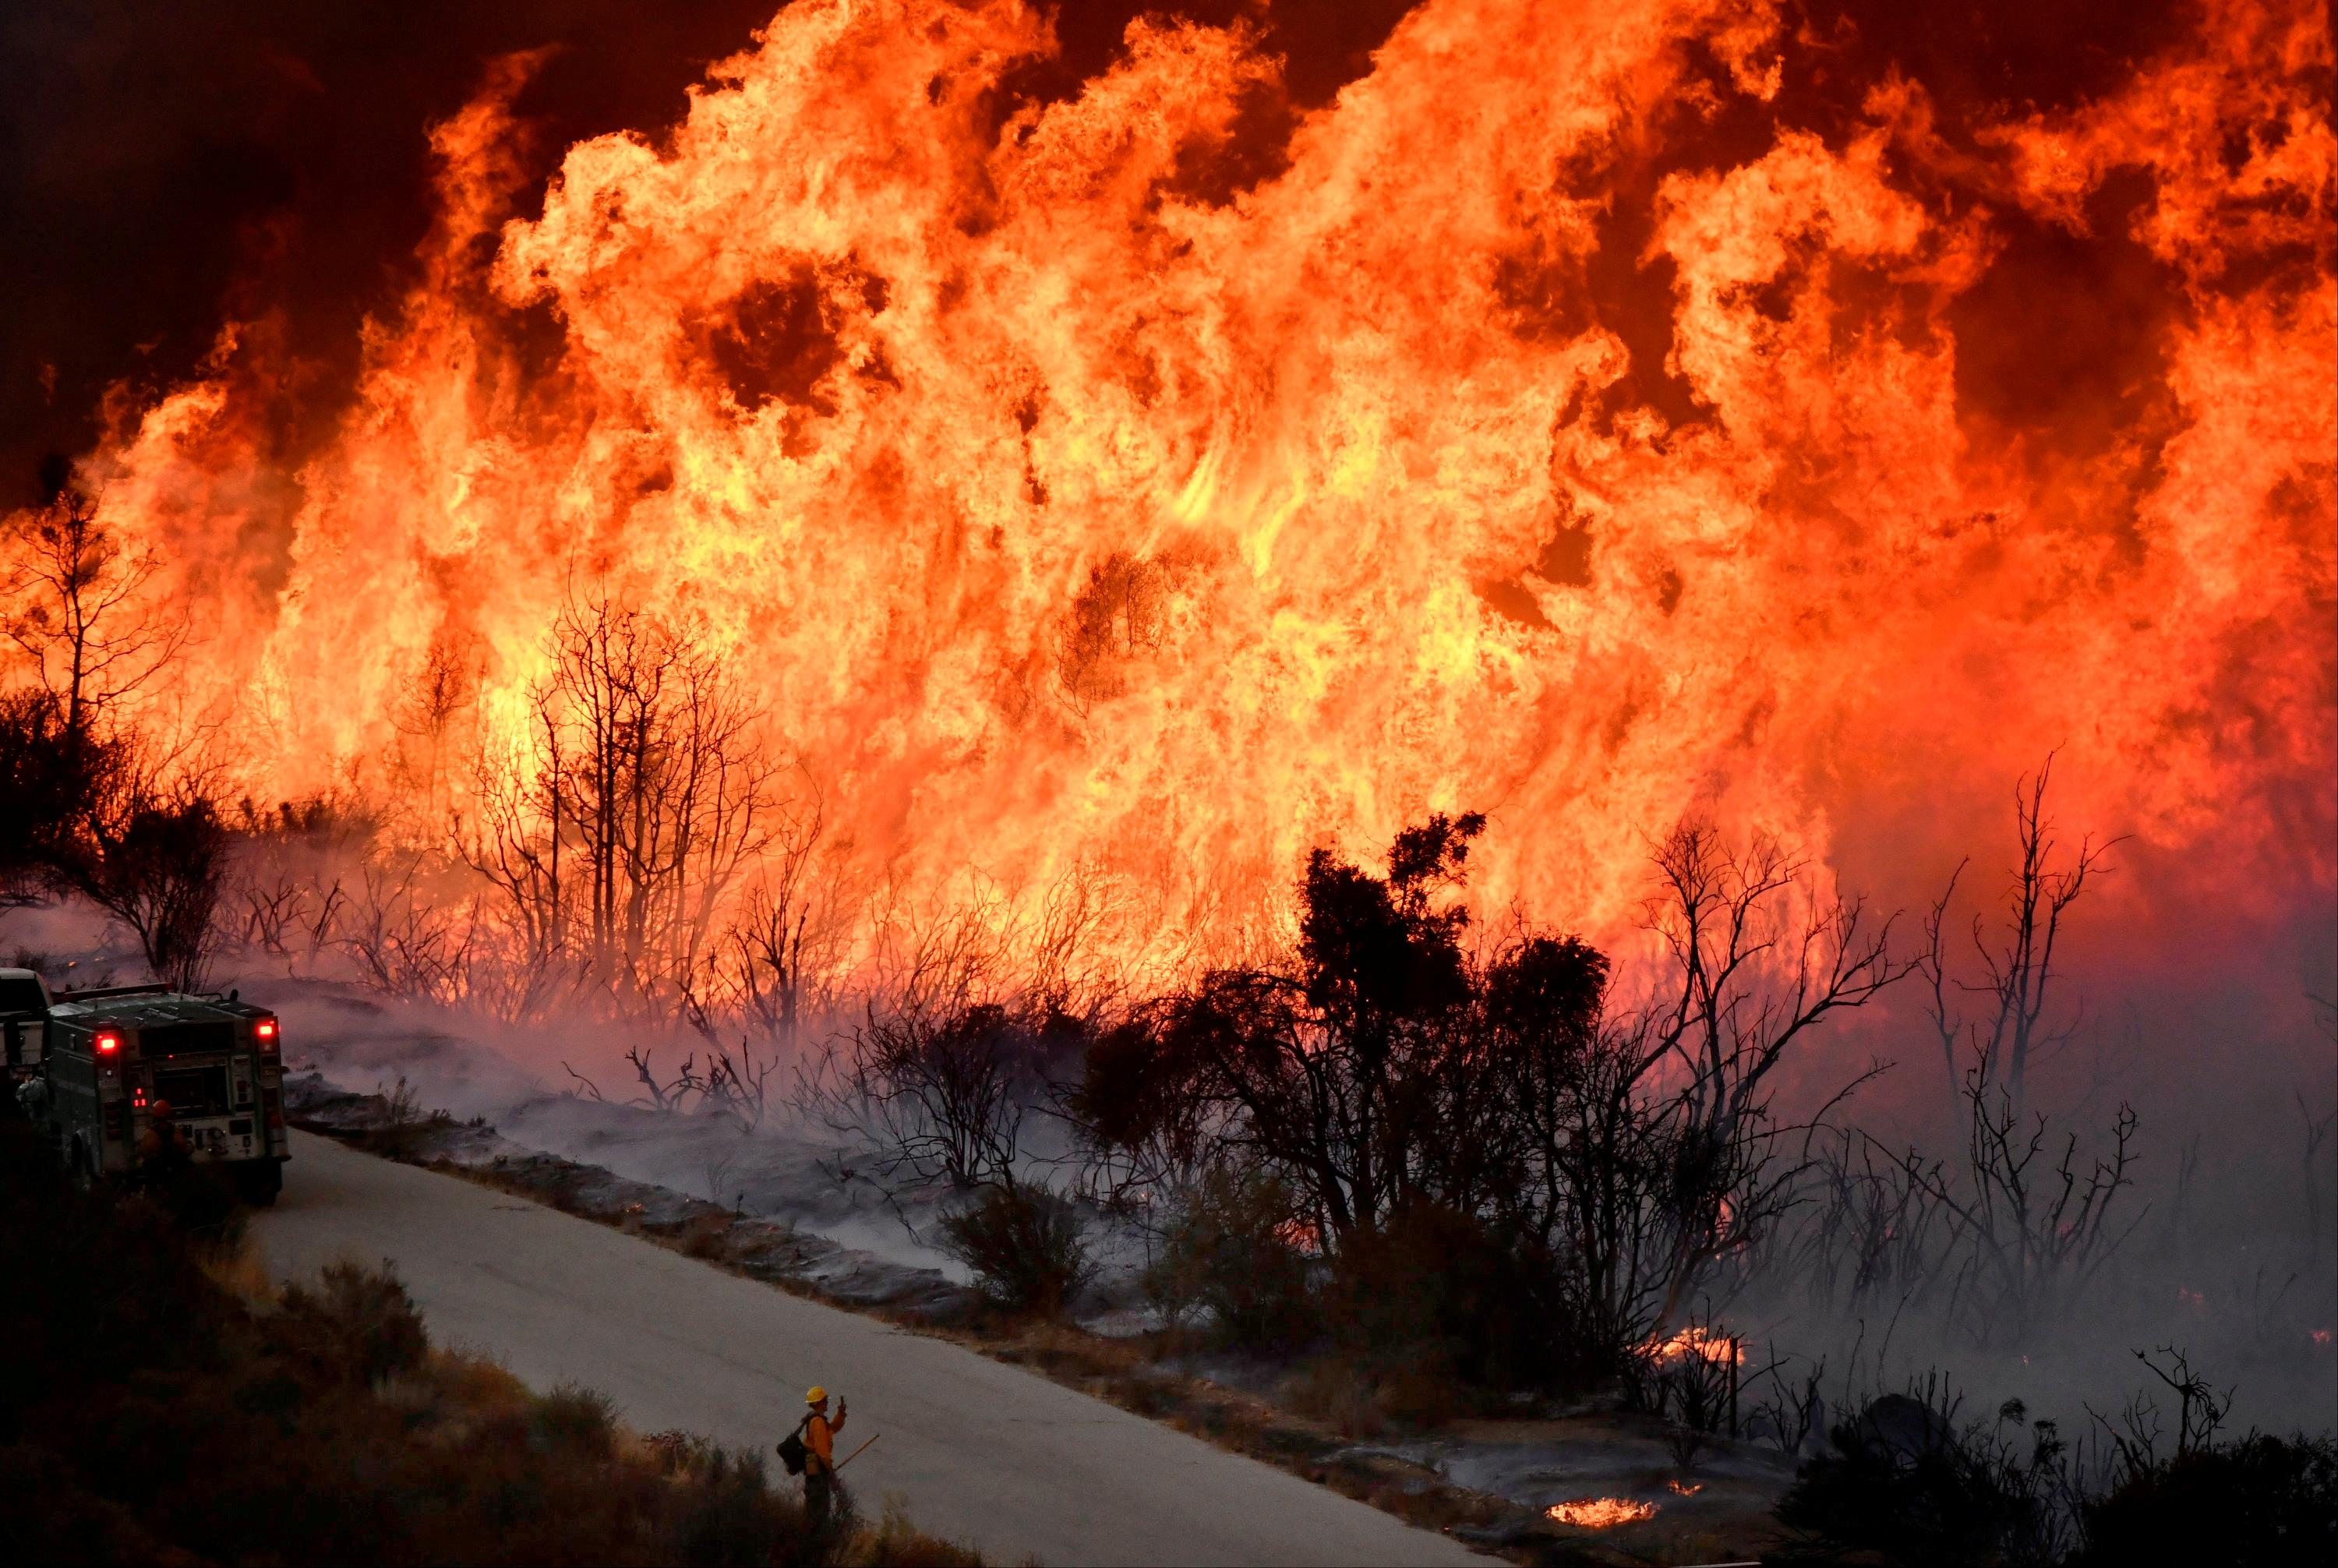 Wildfires rage in California as blazes continue to spread